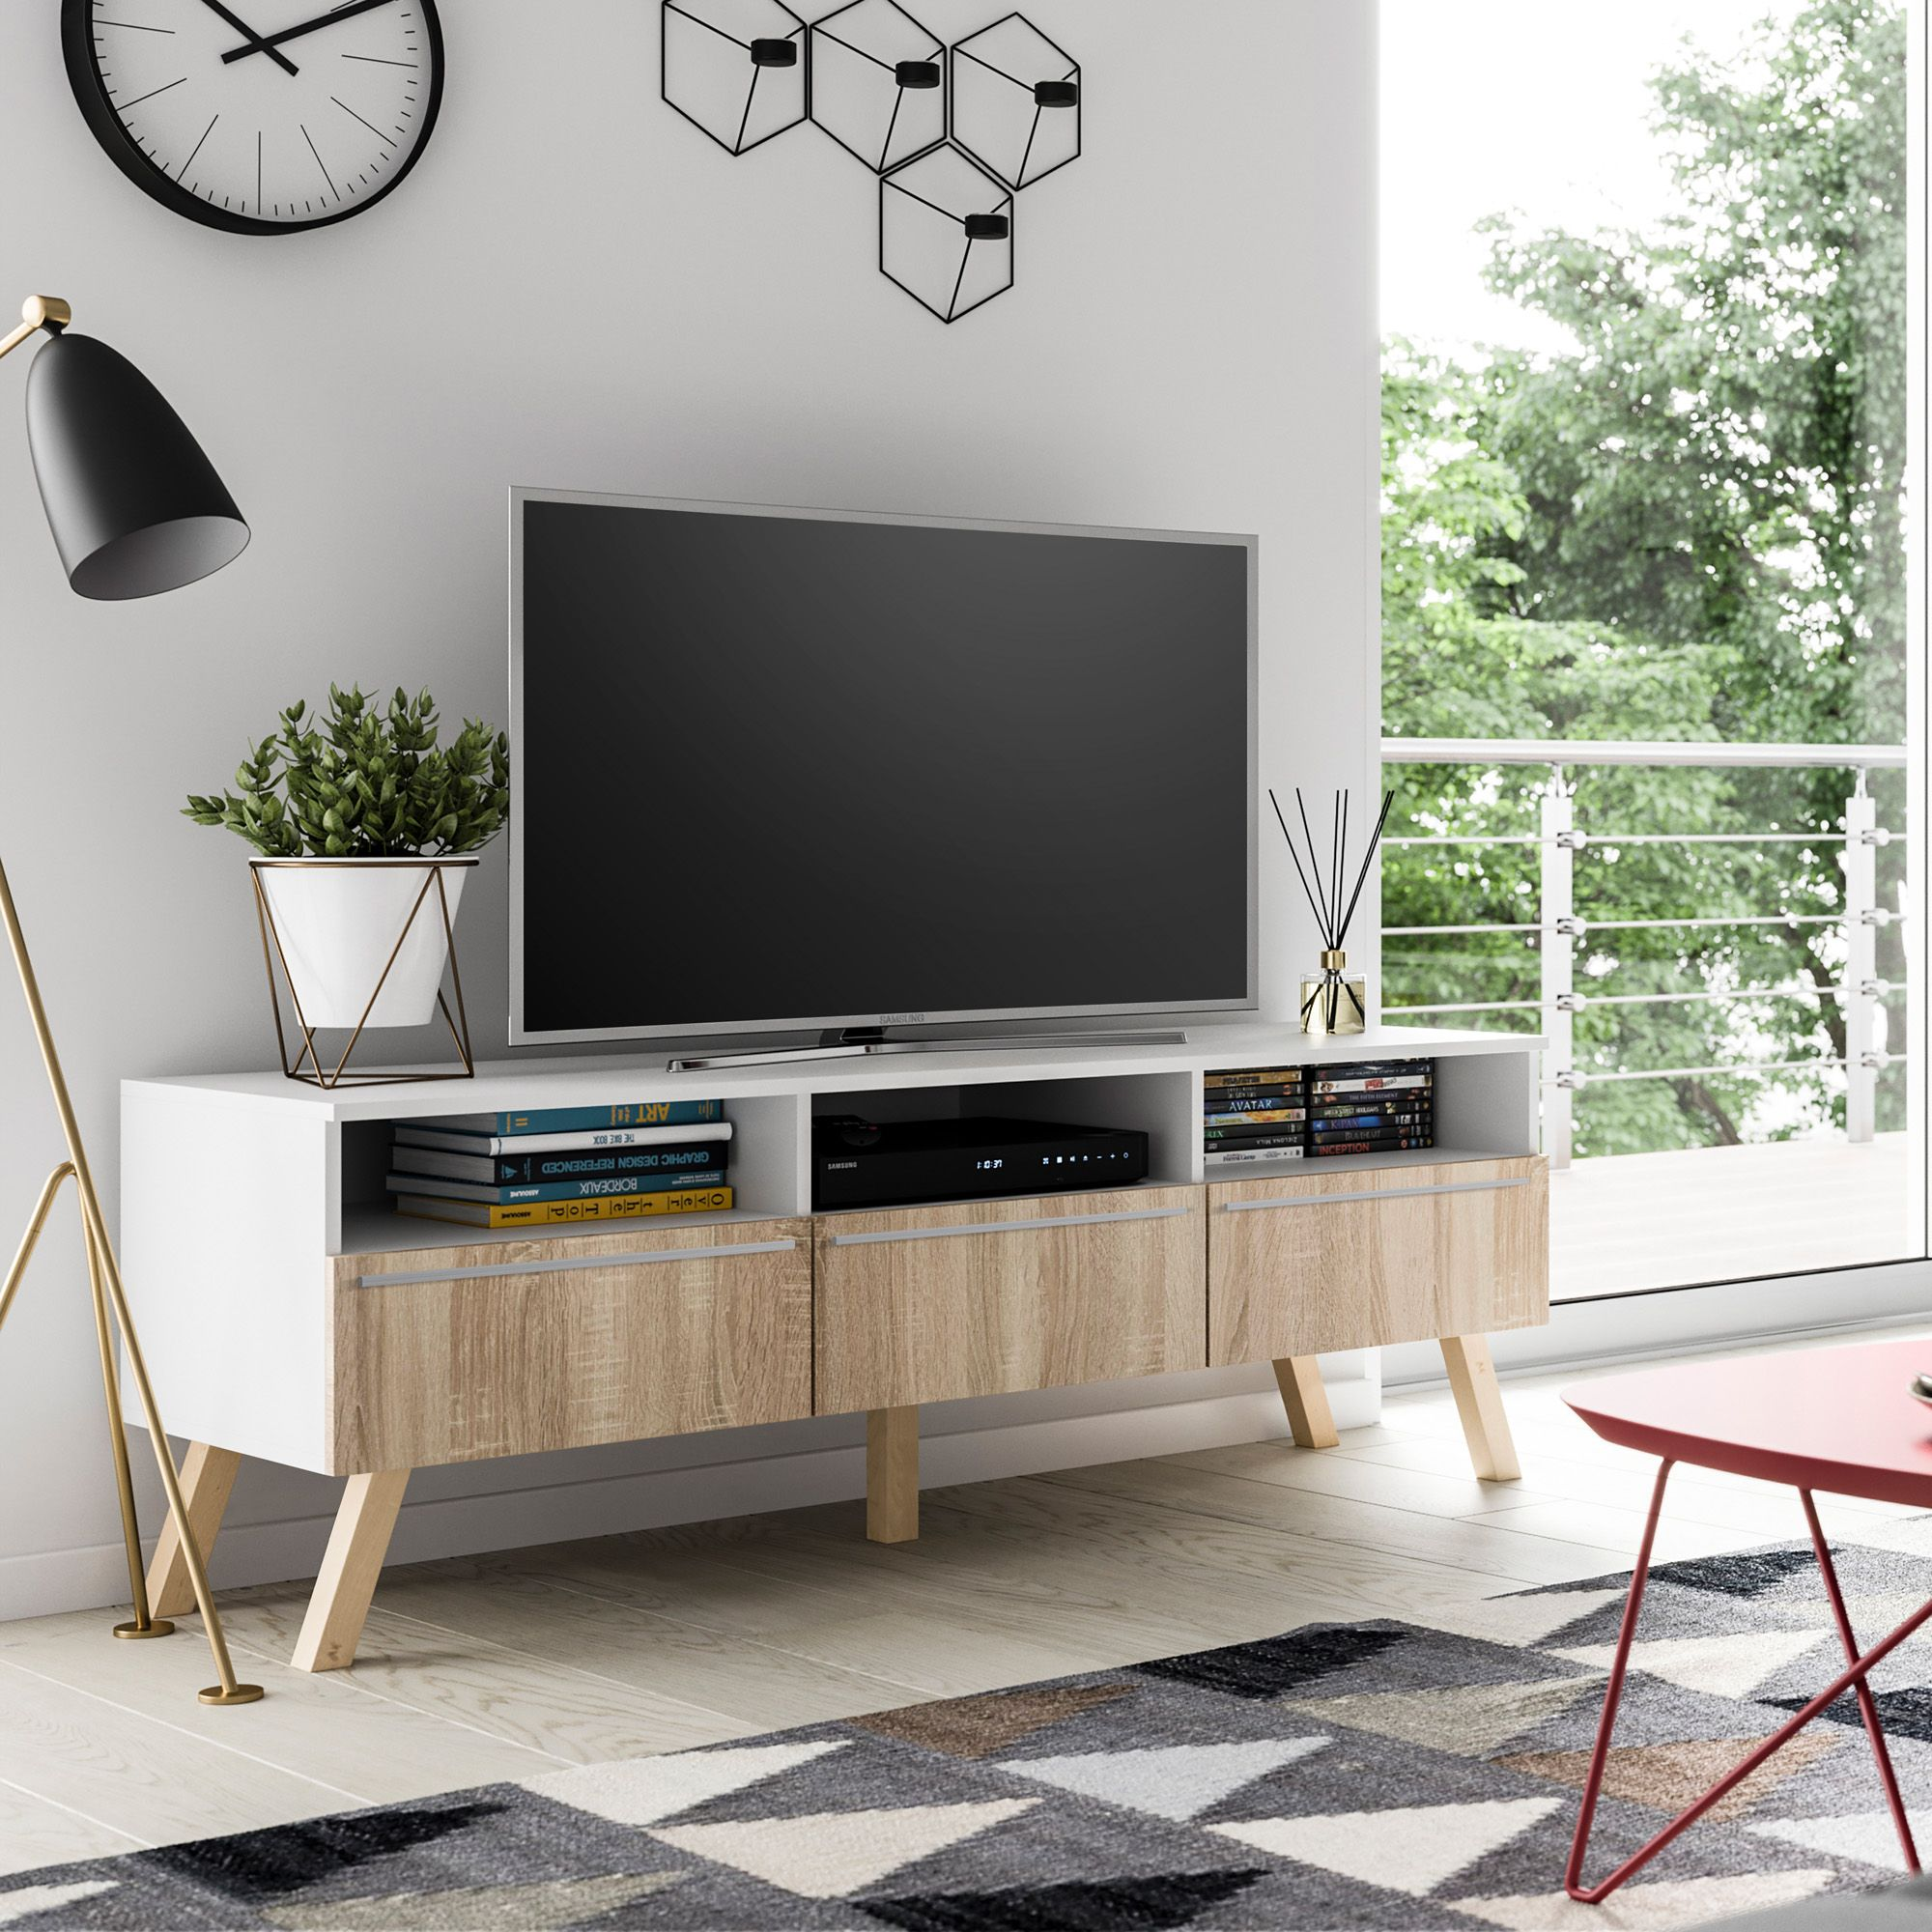 Meuble Tv Scandinave Anthracite Meuble Tv Meuble Salon Lavello Bois 150 Cm Blanc Mat